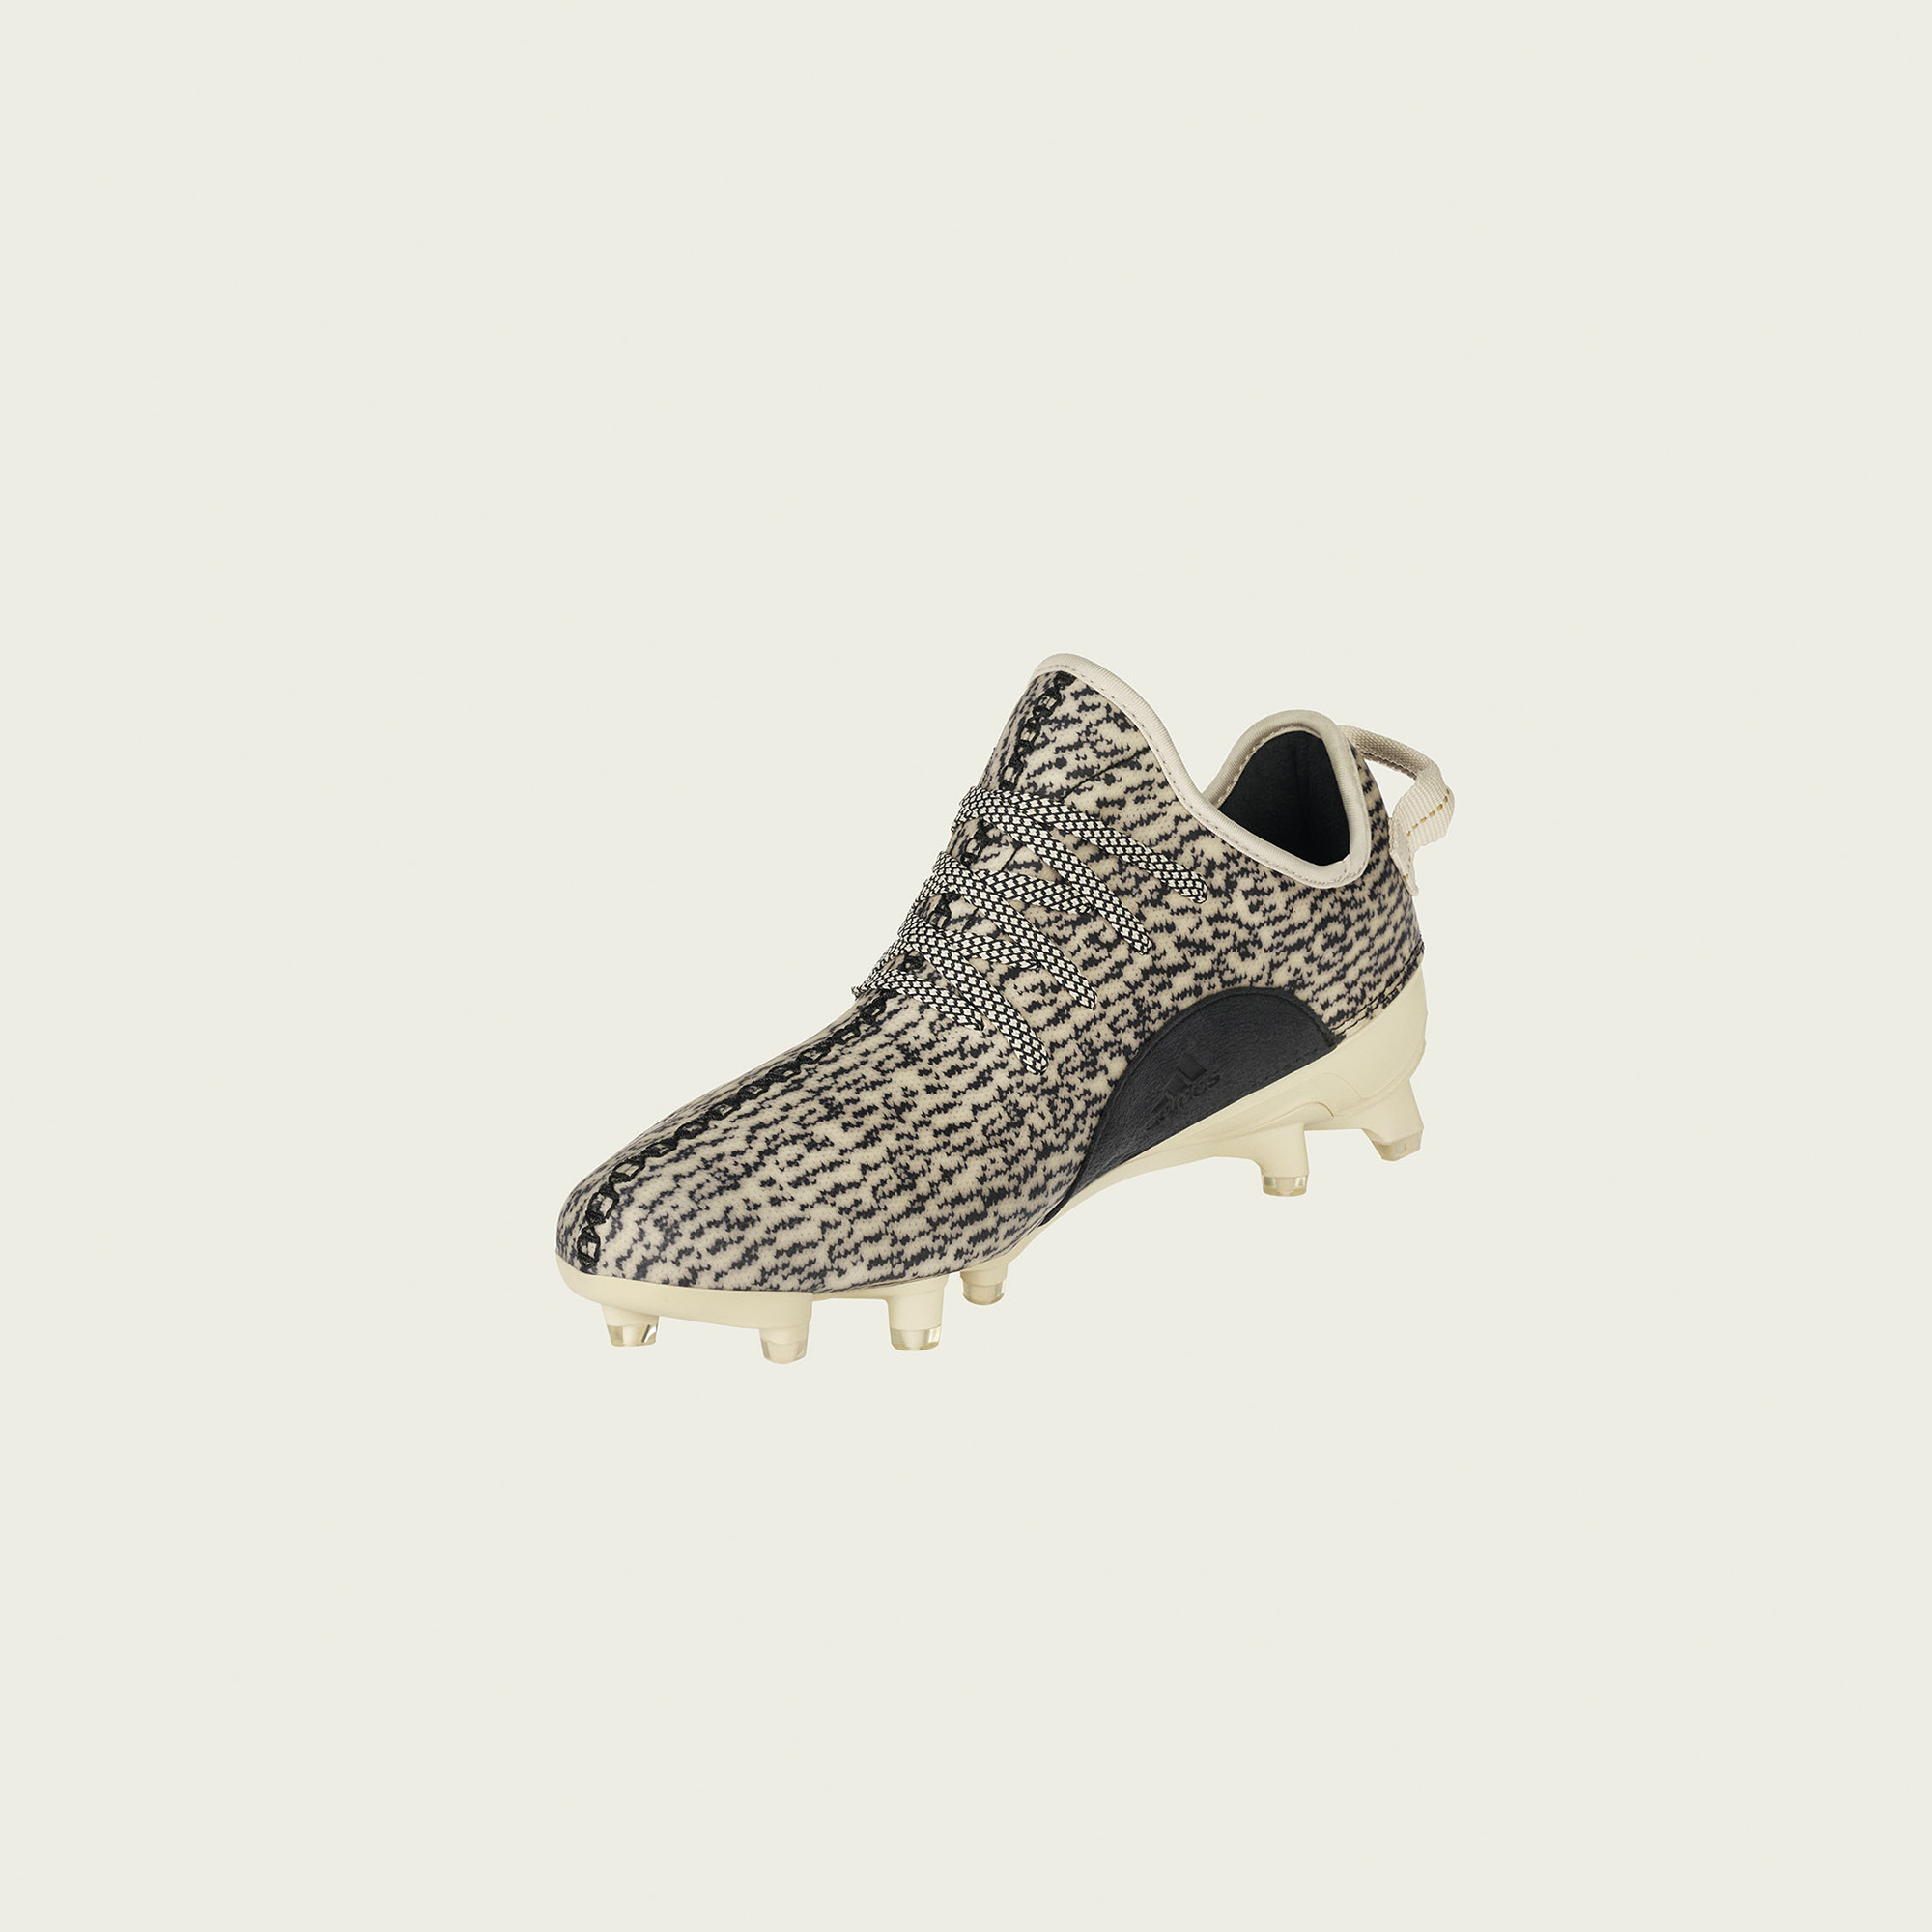 outlet store 3a56f fb238 Yeezy 350 Boost Football Cleat Everything Kanye West ...